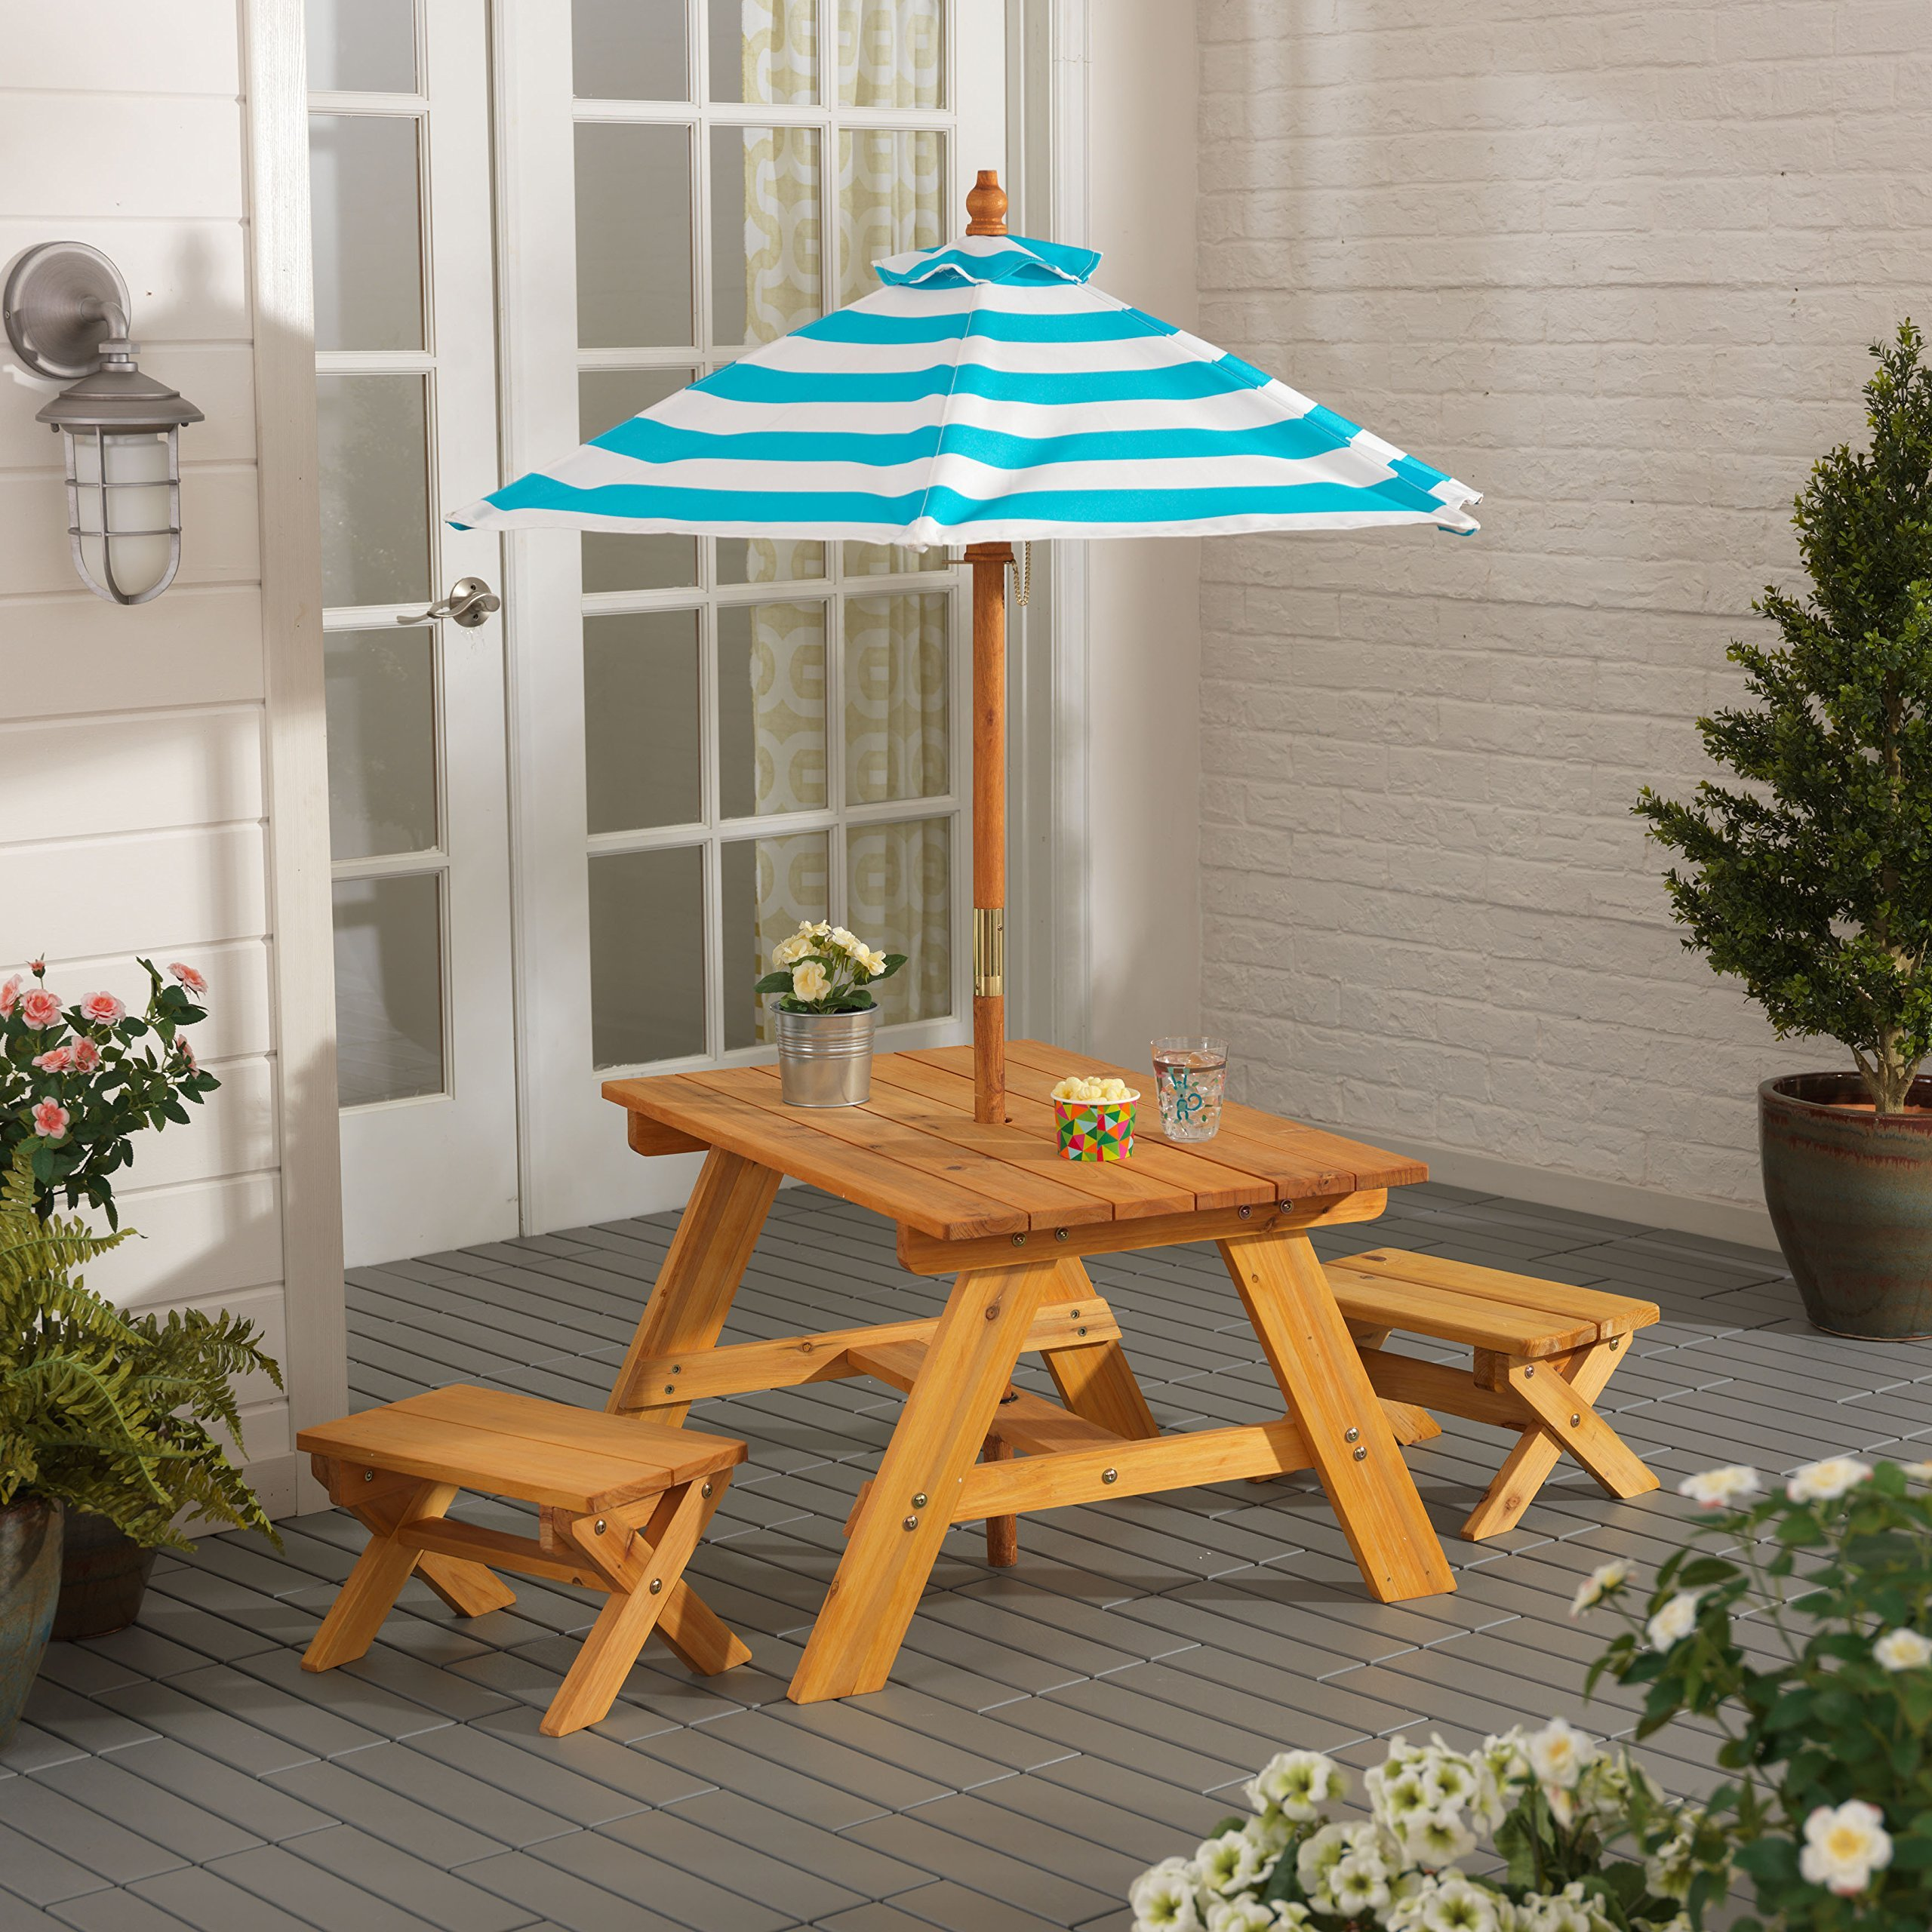 Outdoor Table w/ Benches & Umbrella by KidKraft